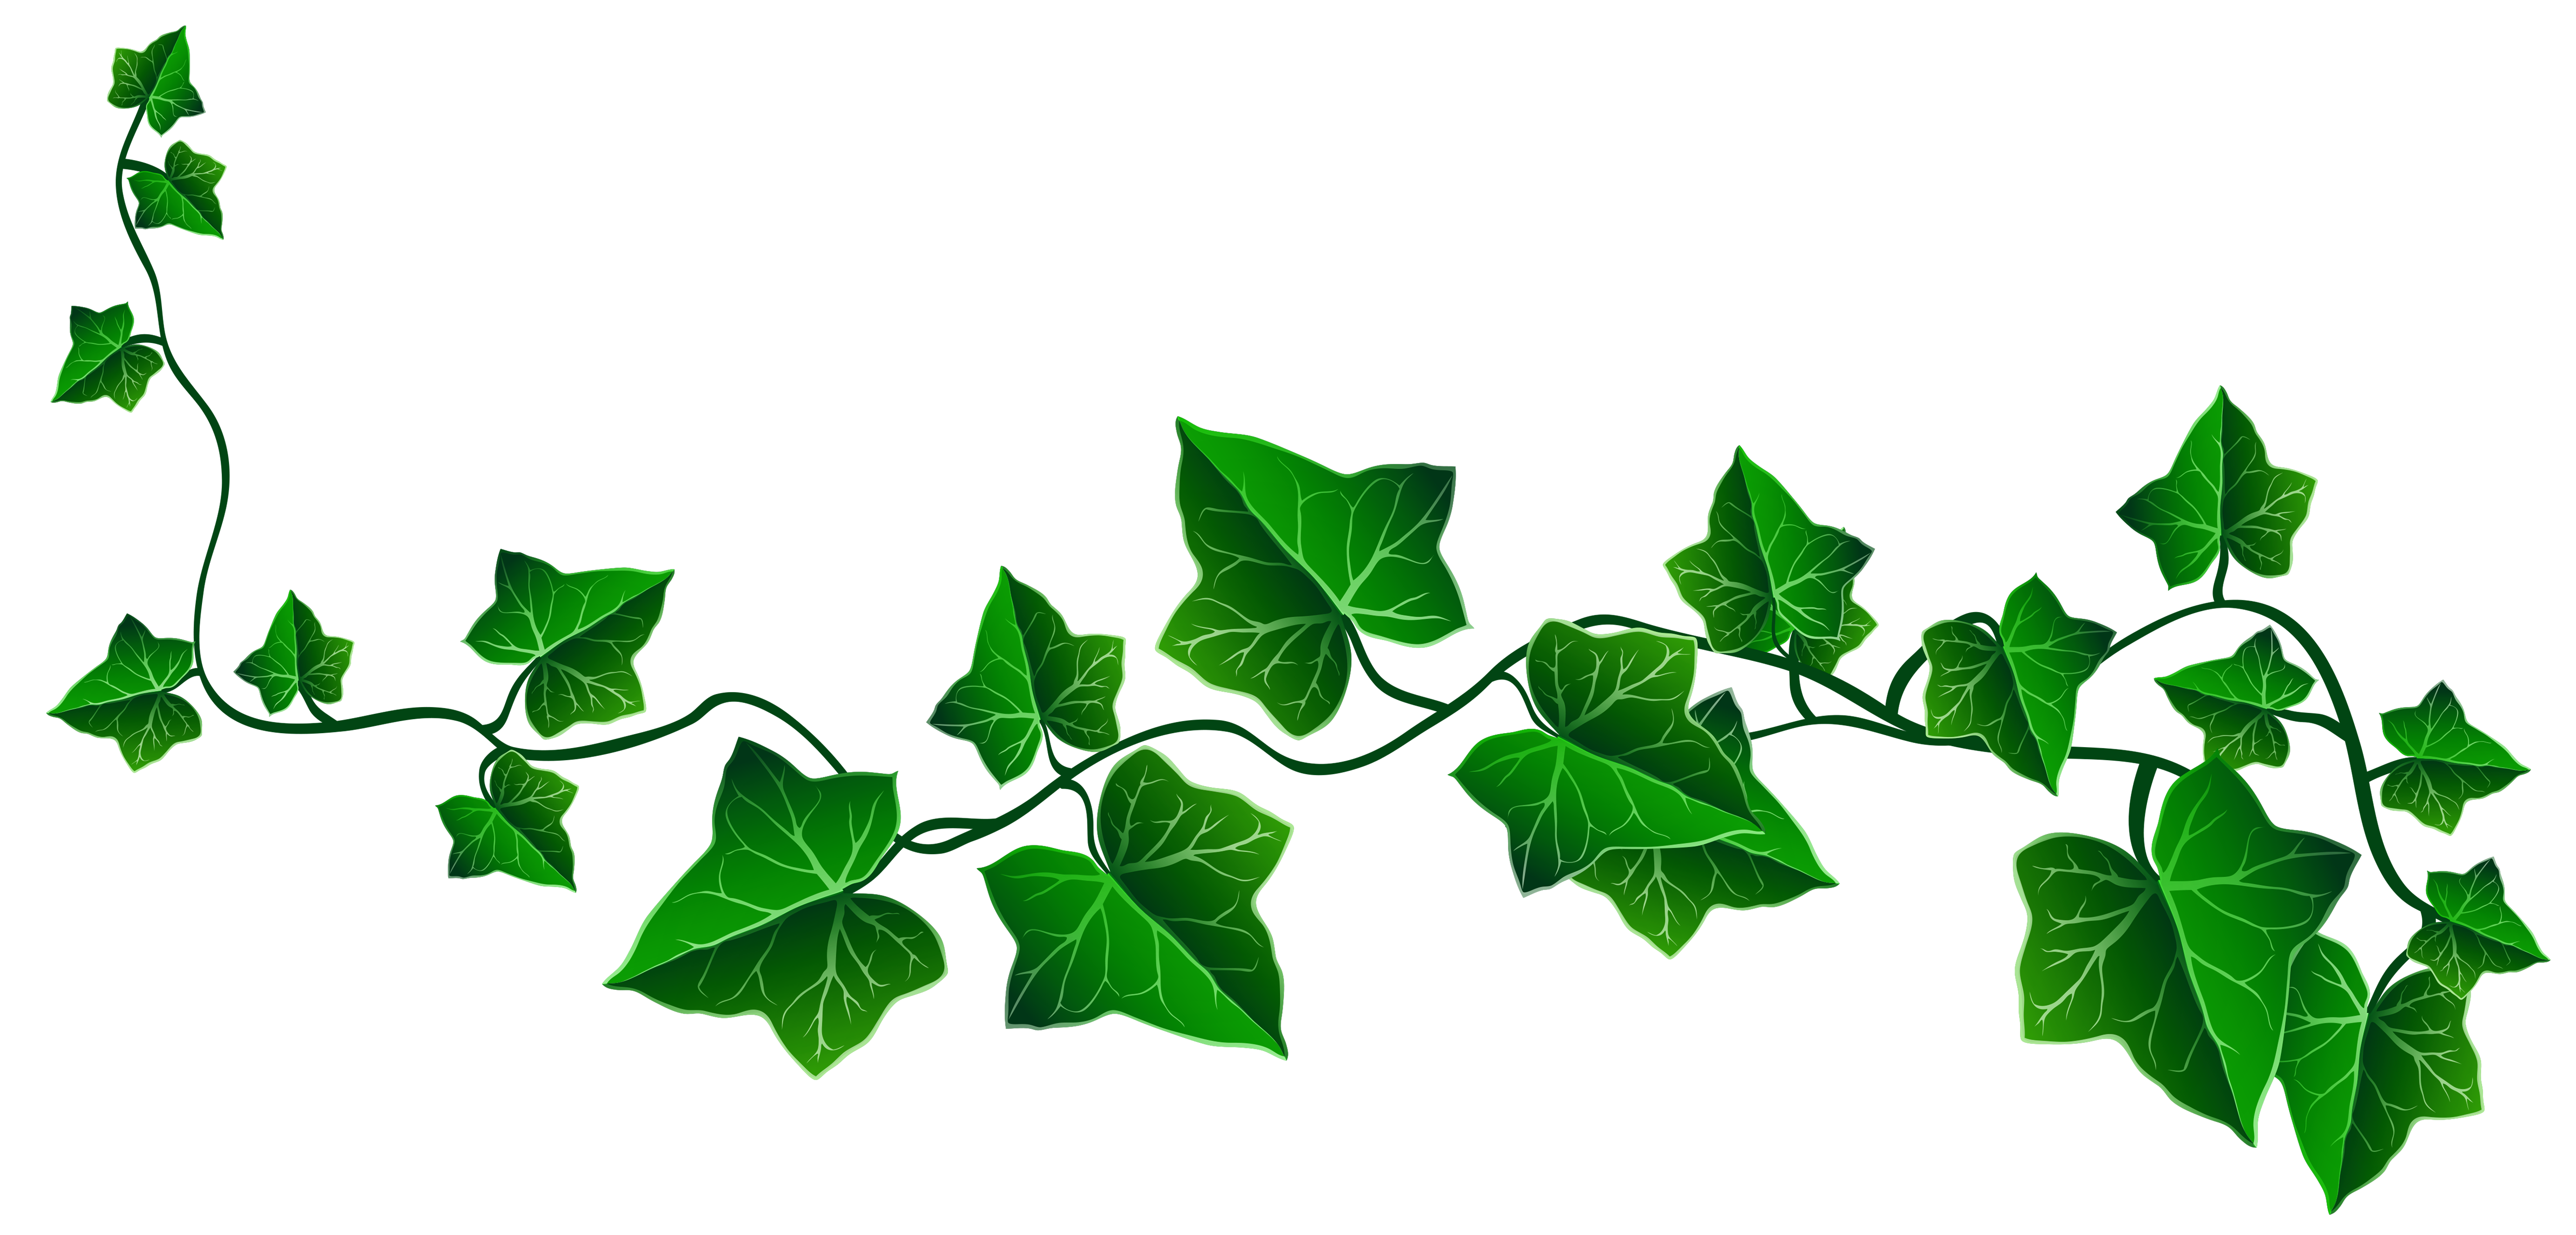 Ivy border clipart free picture royalty free stock Vine Ivy Decoration PNG Clipart Picture | Gallery ... picture royalty free stock